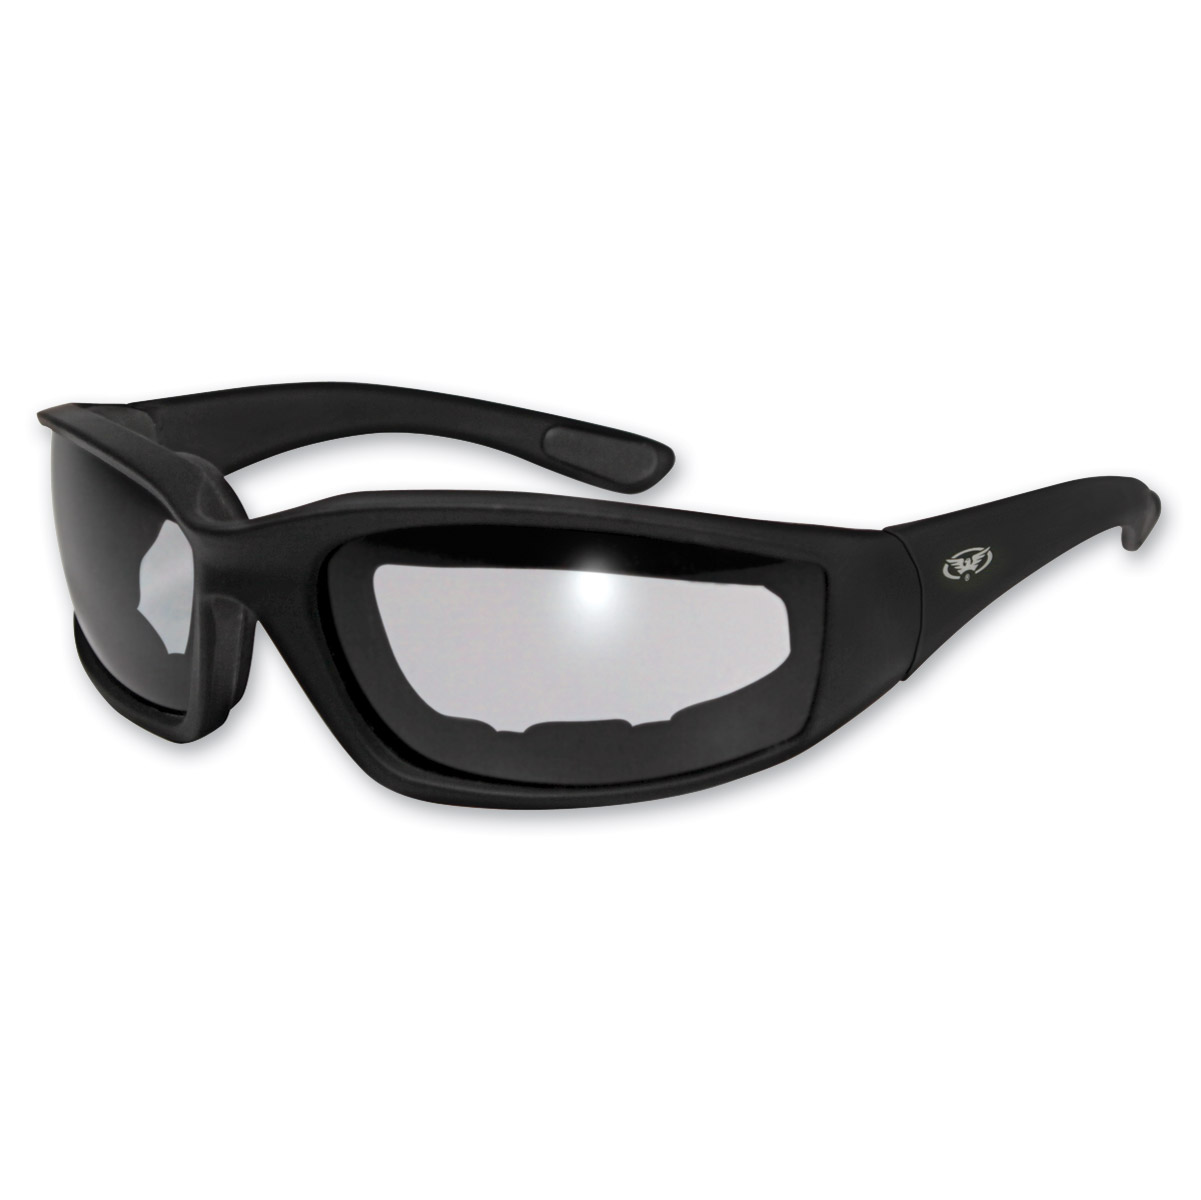 Global Vision Eyewear Kickback Padded Sunglasses with Clear Lens